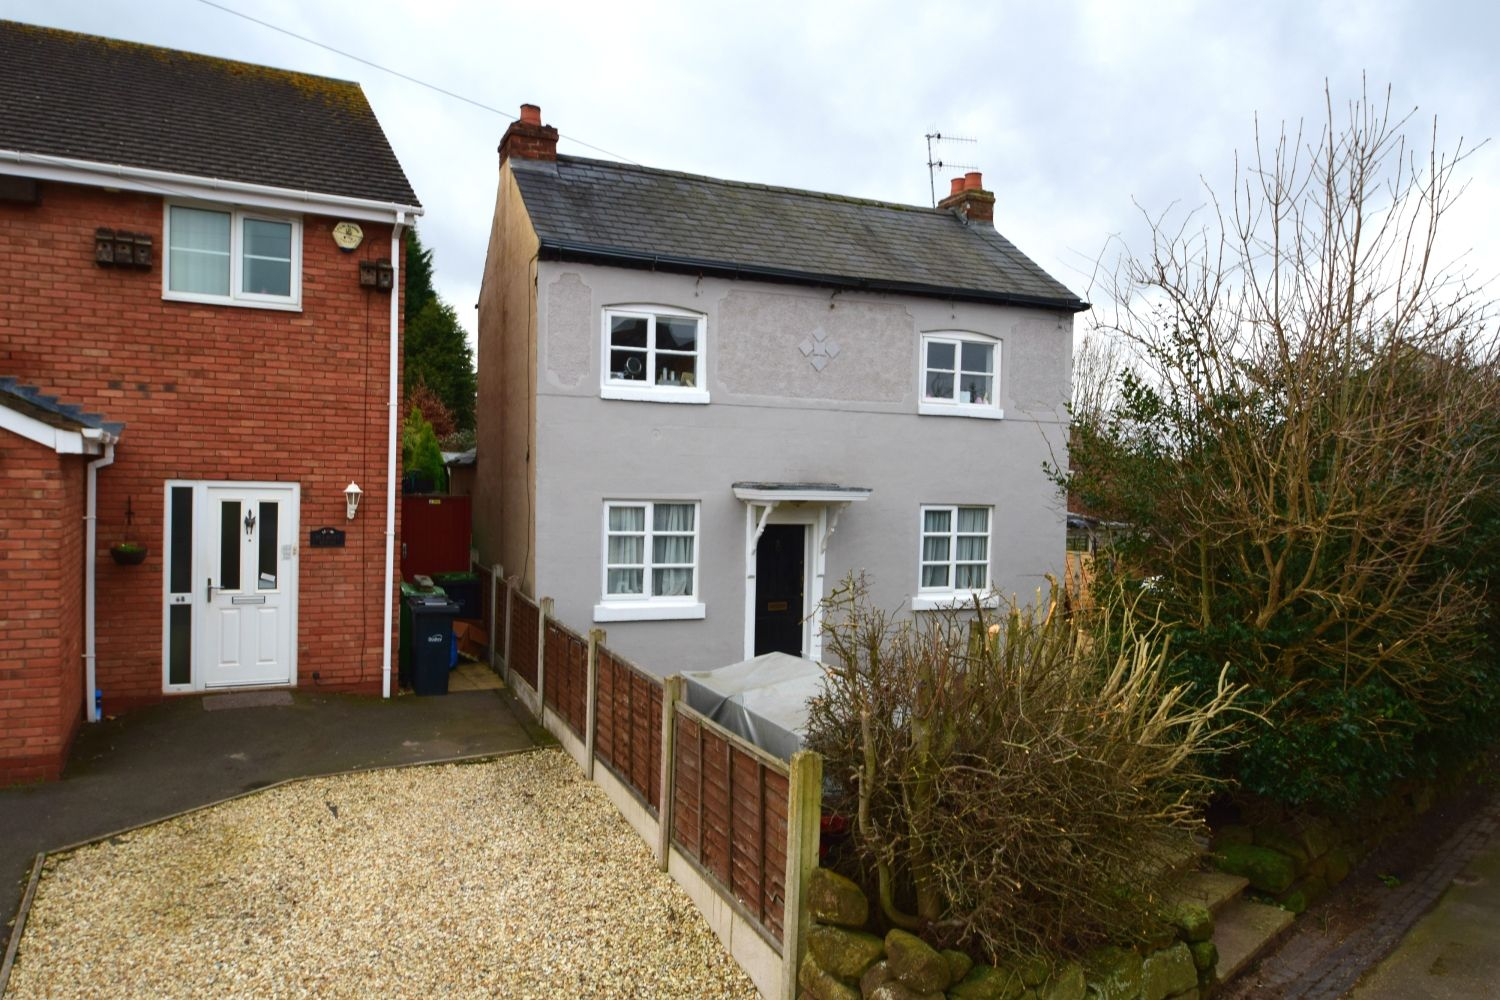 3 bed detached for sale in Belmont Road, Wollescote - Property Image 1